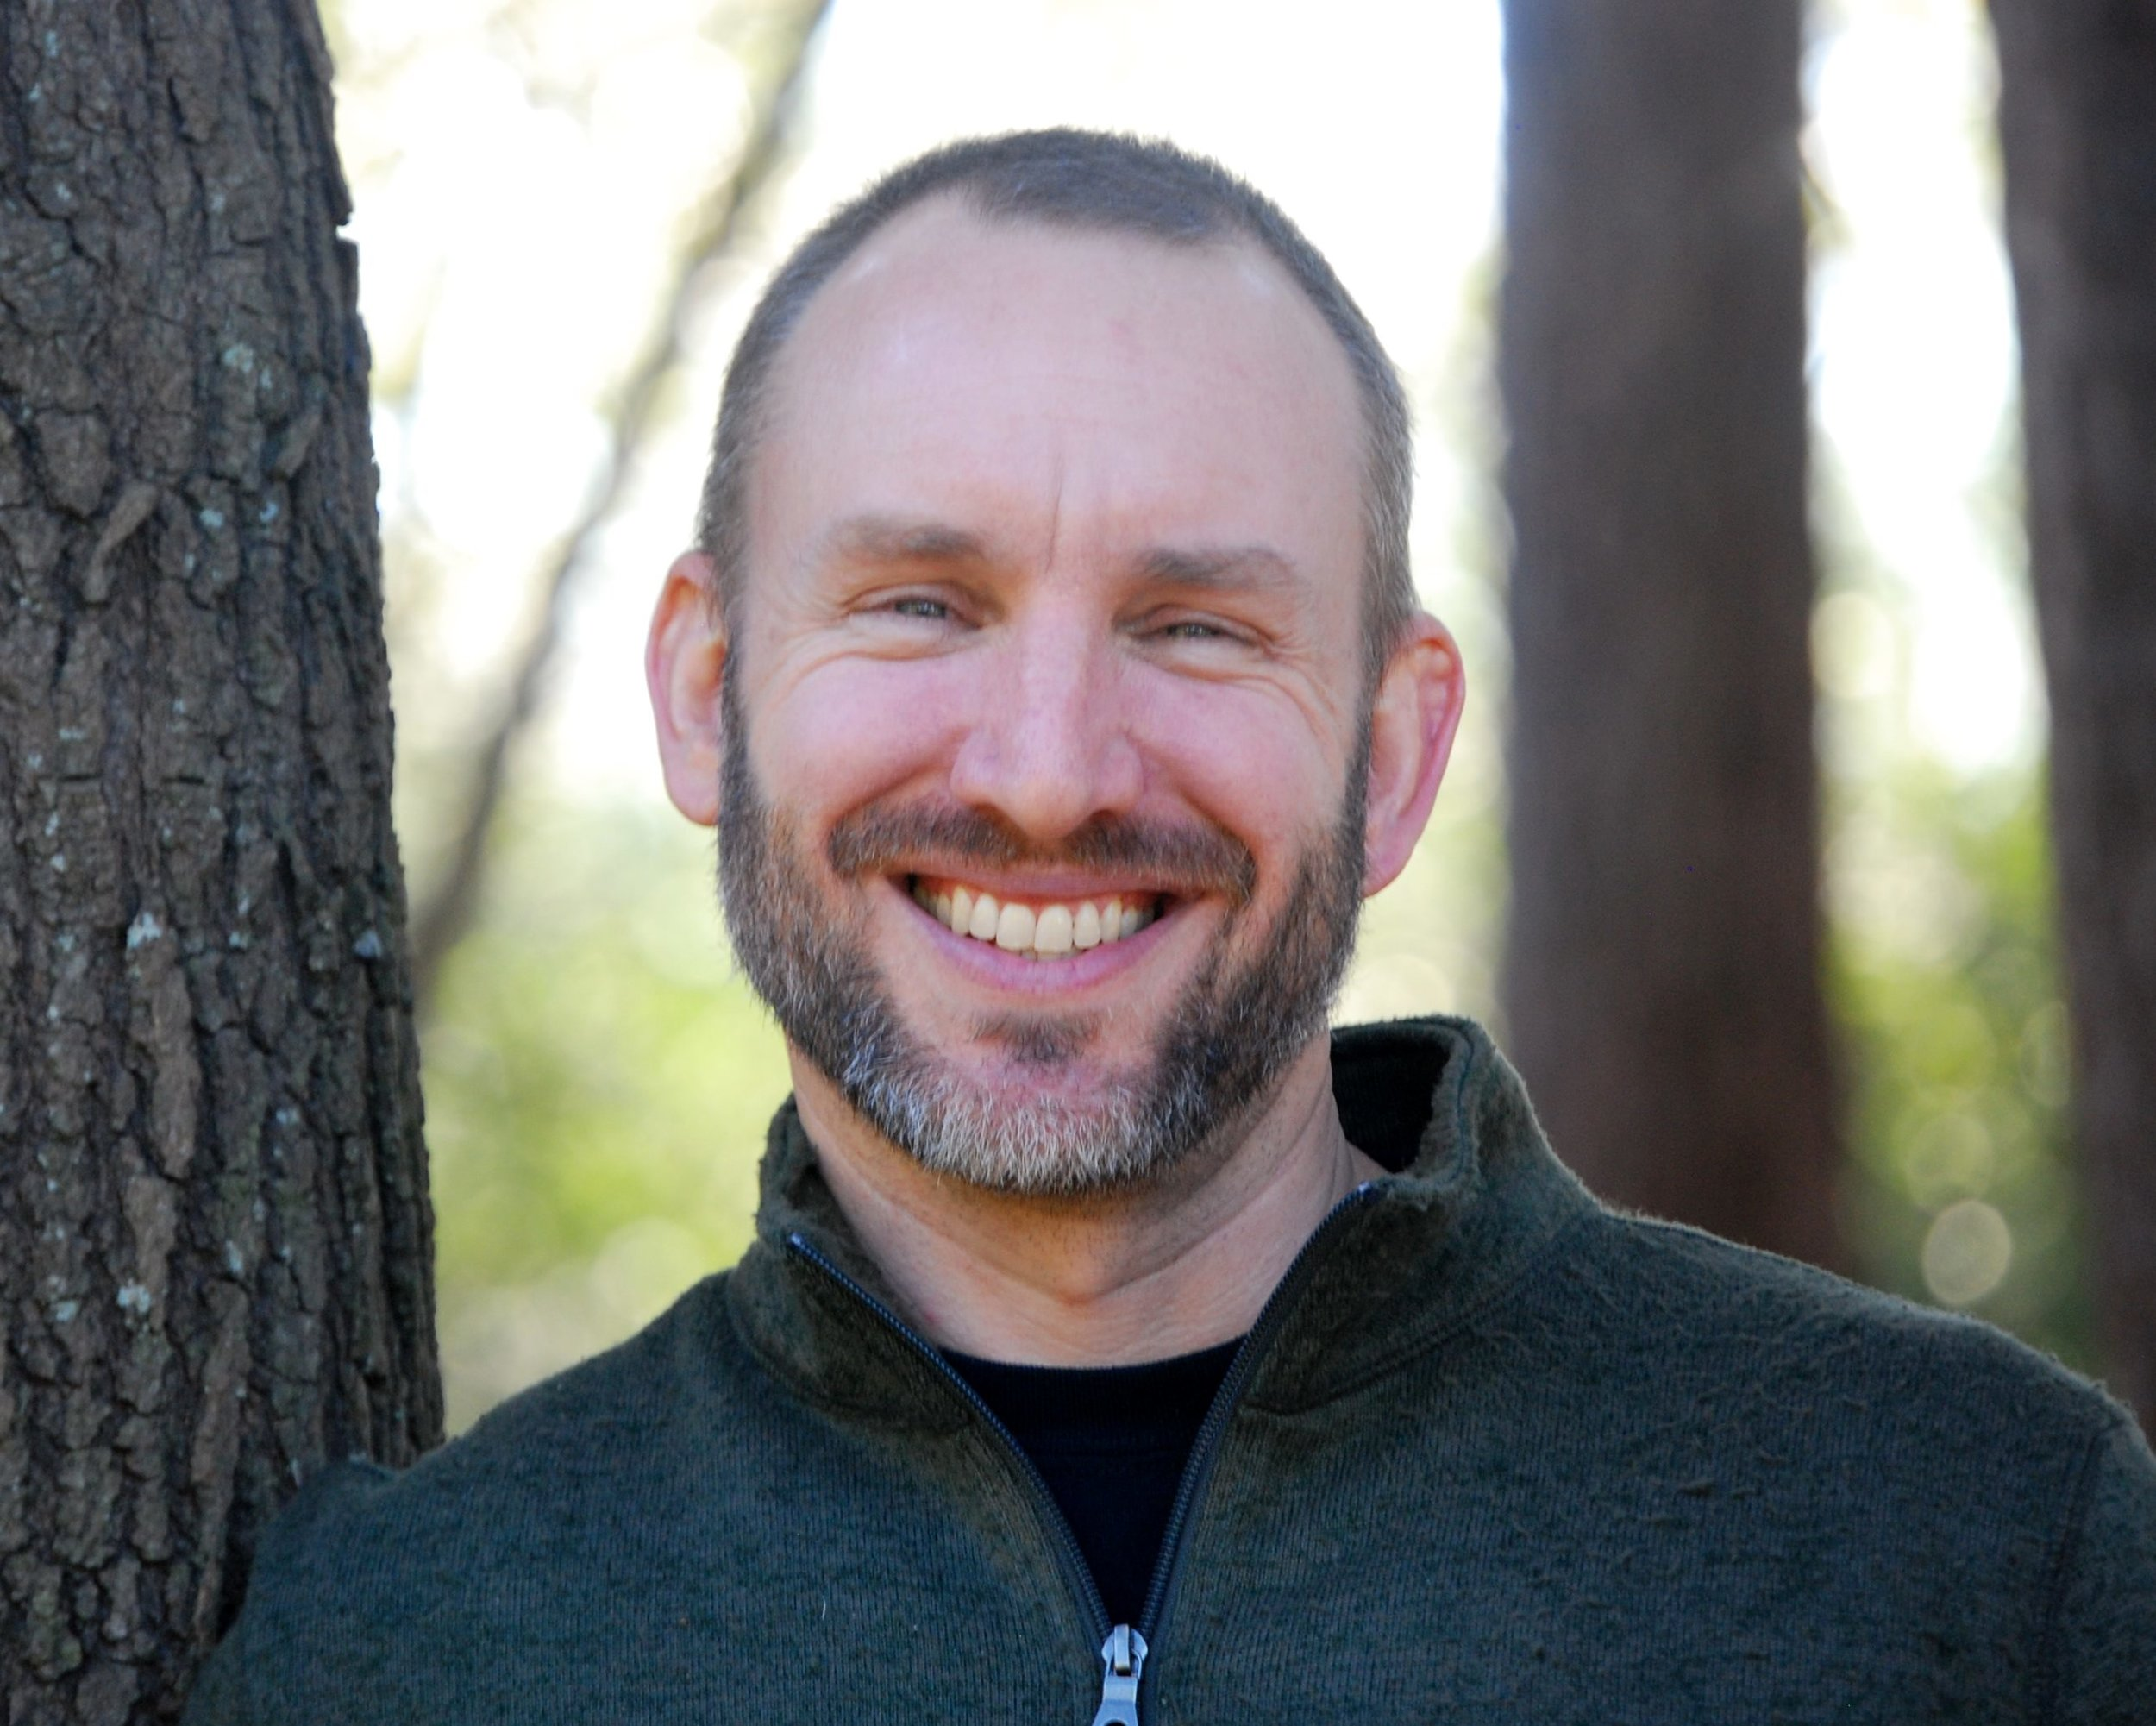 Jesse Moller, LCSW, Practice Manager - More about Jesse...